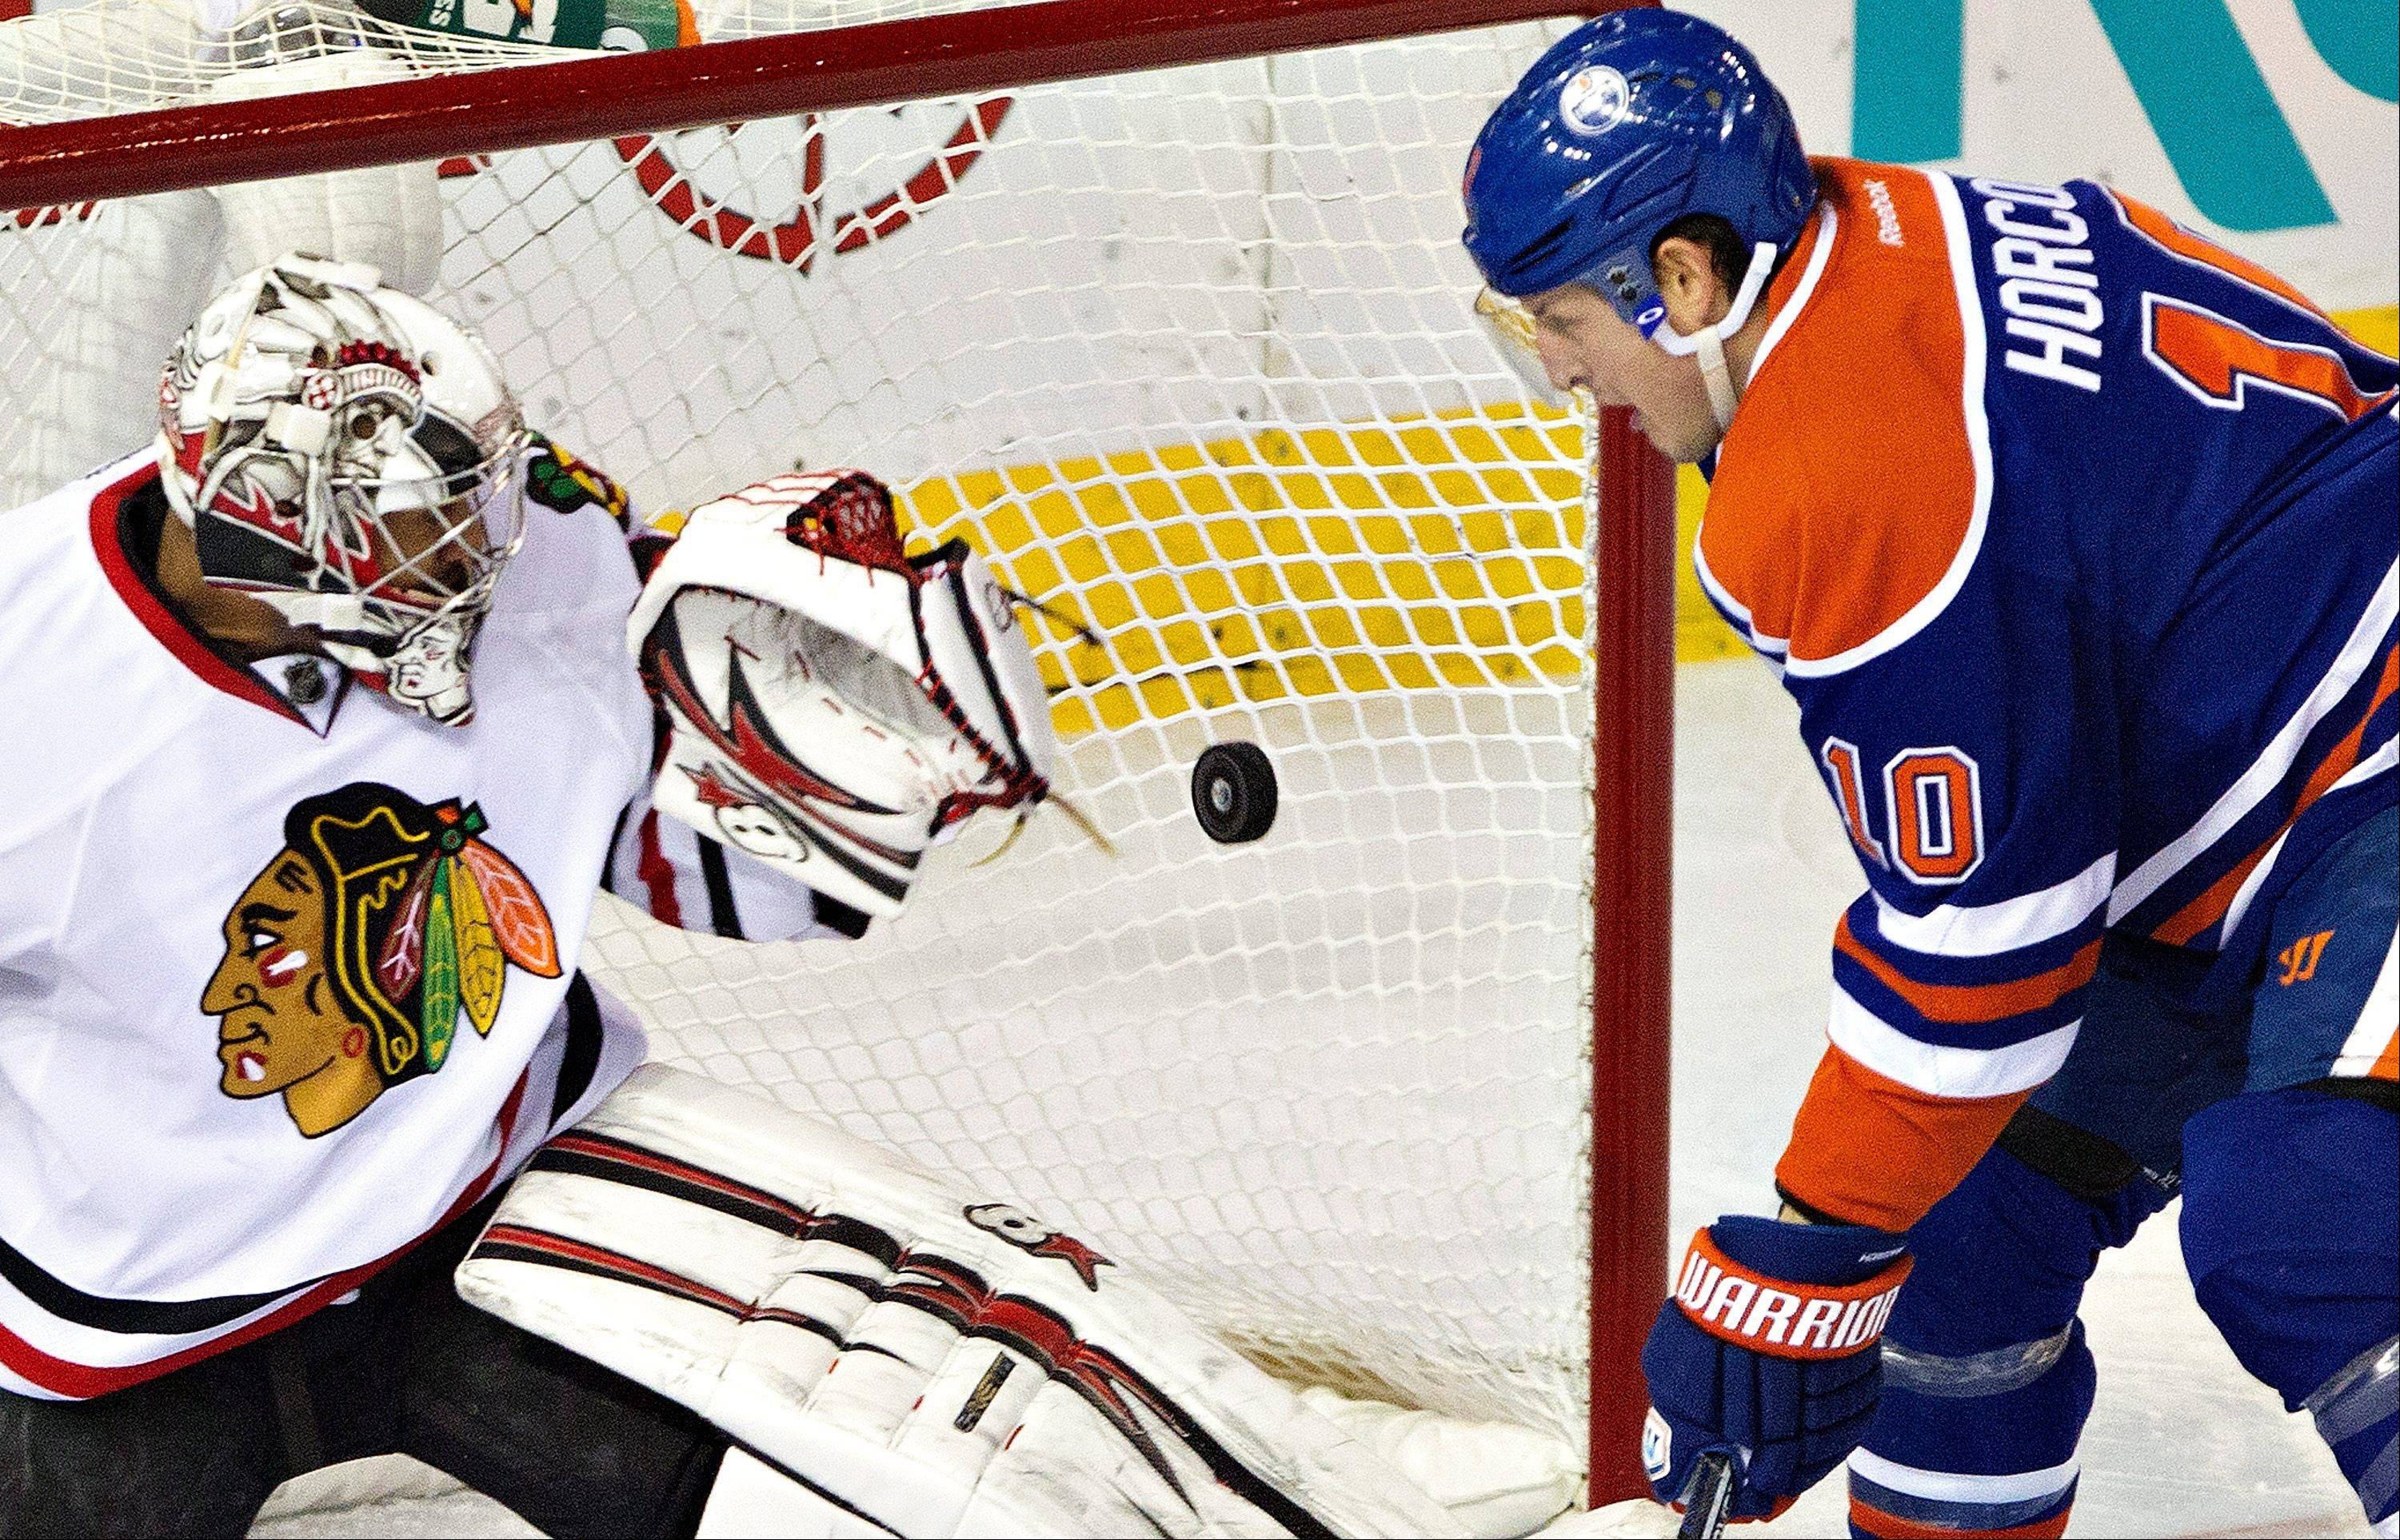 Chicago Blackhawks goalie Ray Emery is scored on as Edmonton Oilers' Shawn Horcoff, right, watches the puck go in the net during the first period of their NHL hockey game in Edmonton, Alberta, Wednesday, April 24, 2013.